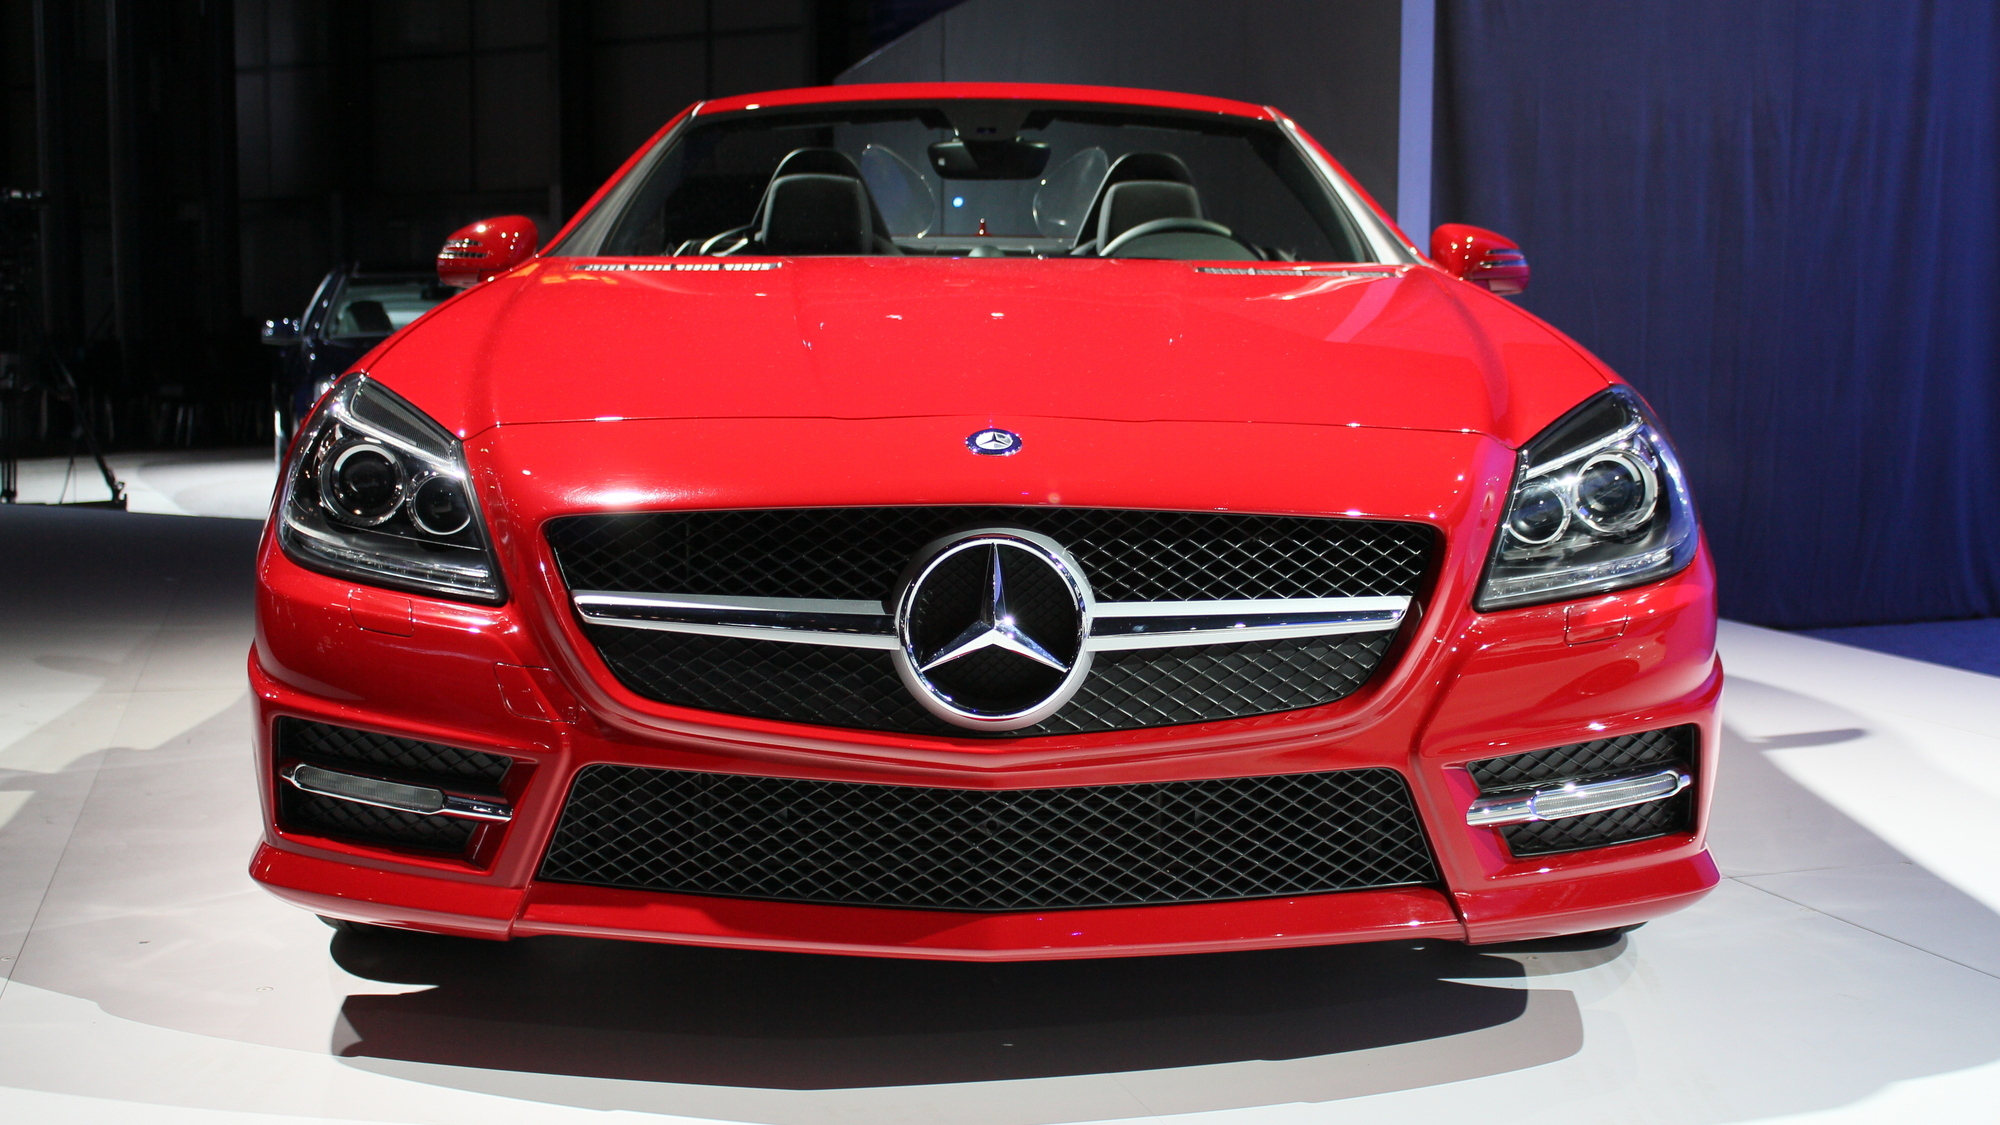 2012 Mercedes-Benz SLK 350 live photos